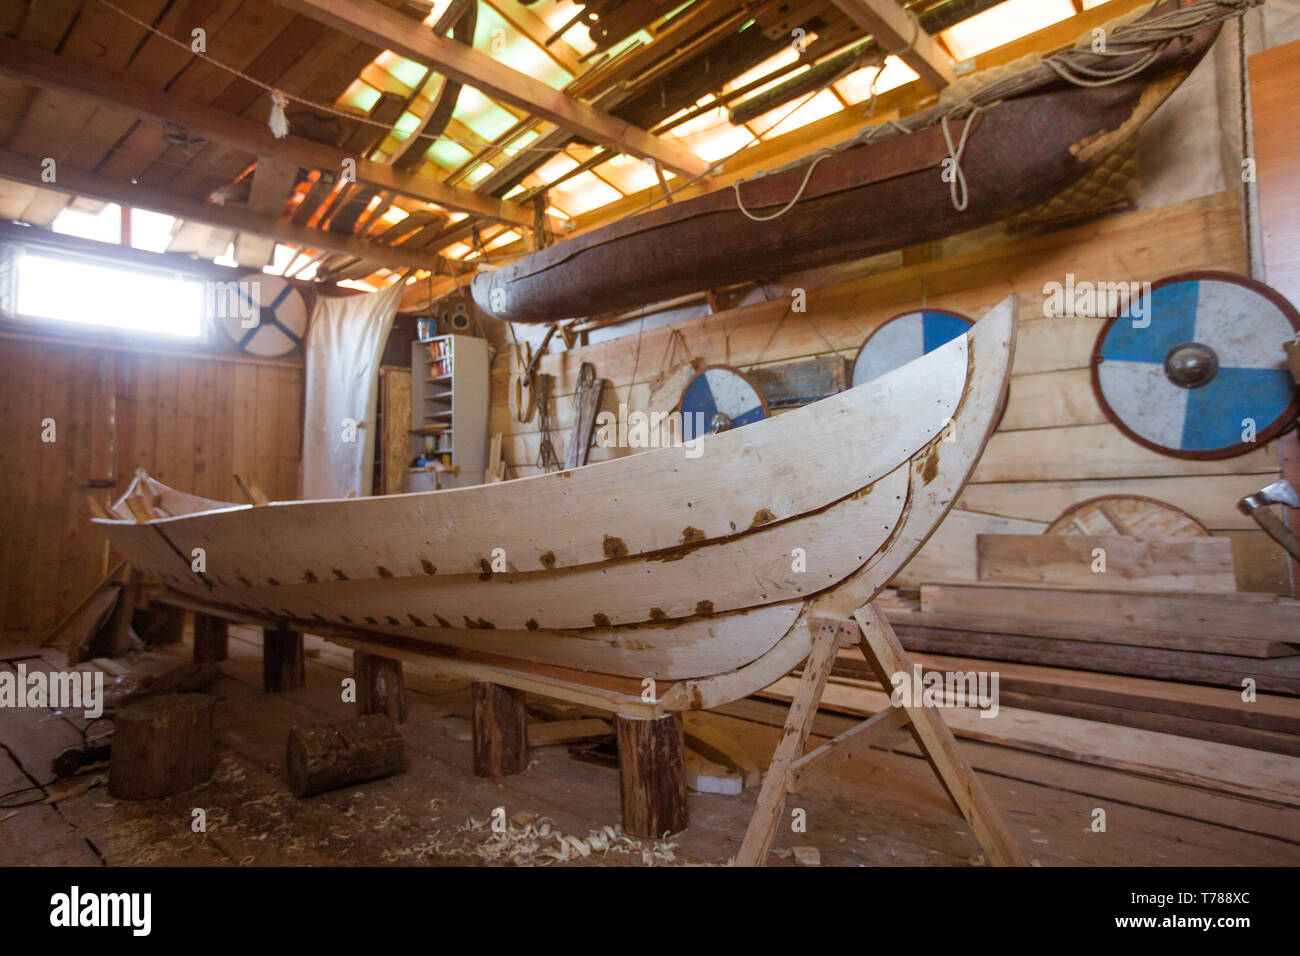 Handmade wooden boat in the barn , work tools and reenactor shields on background - Stock Image